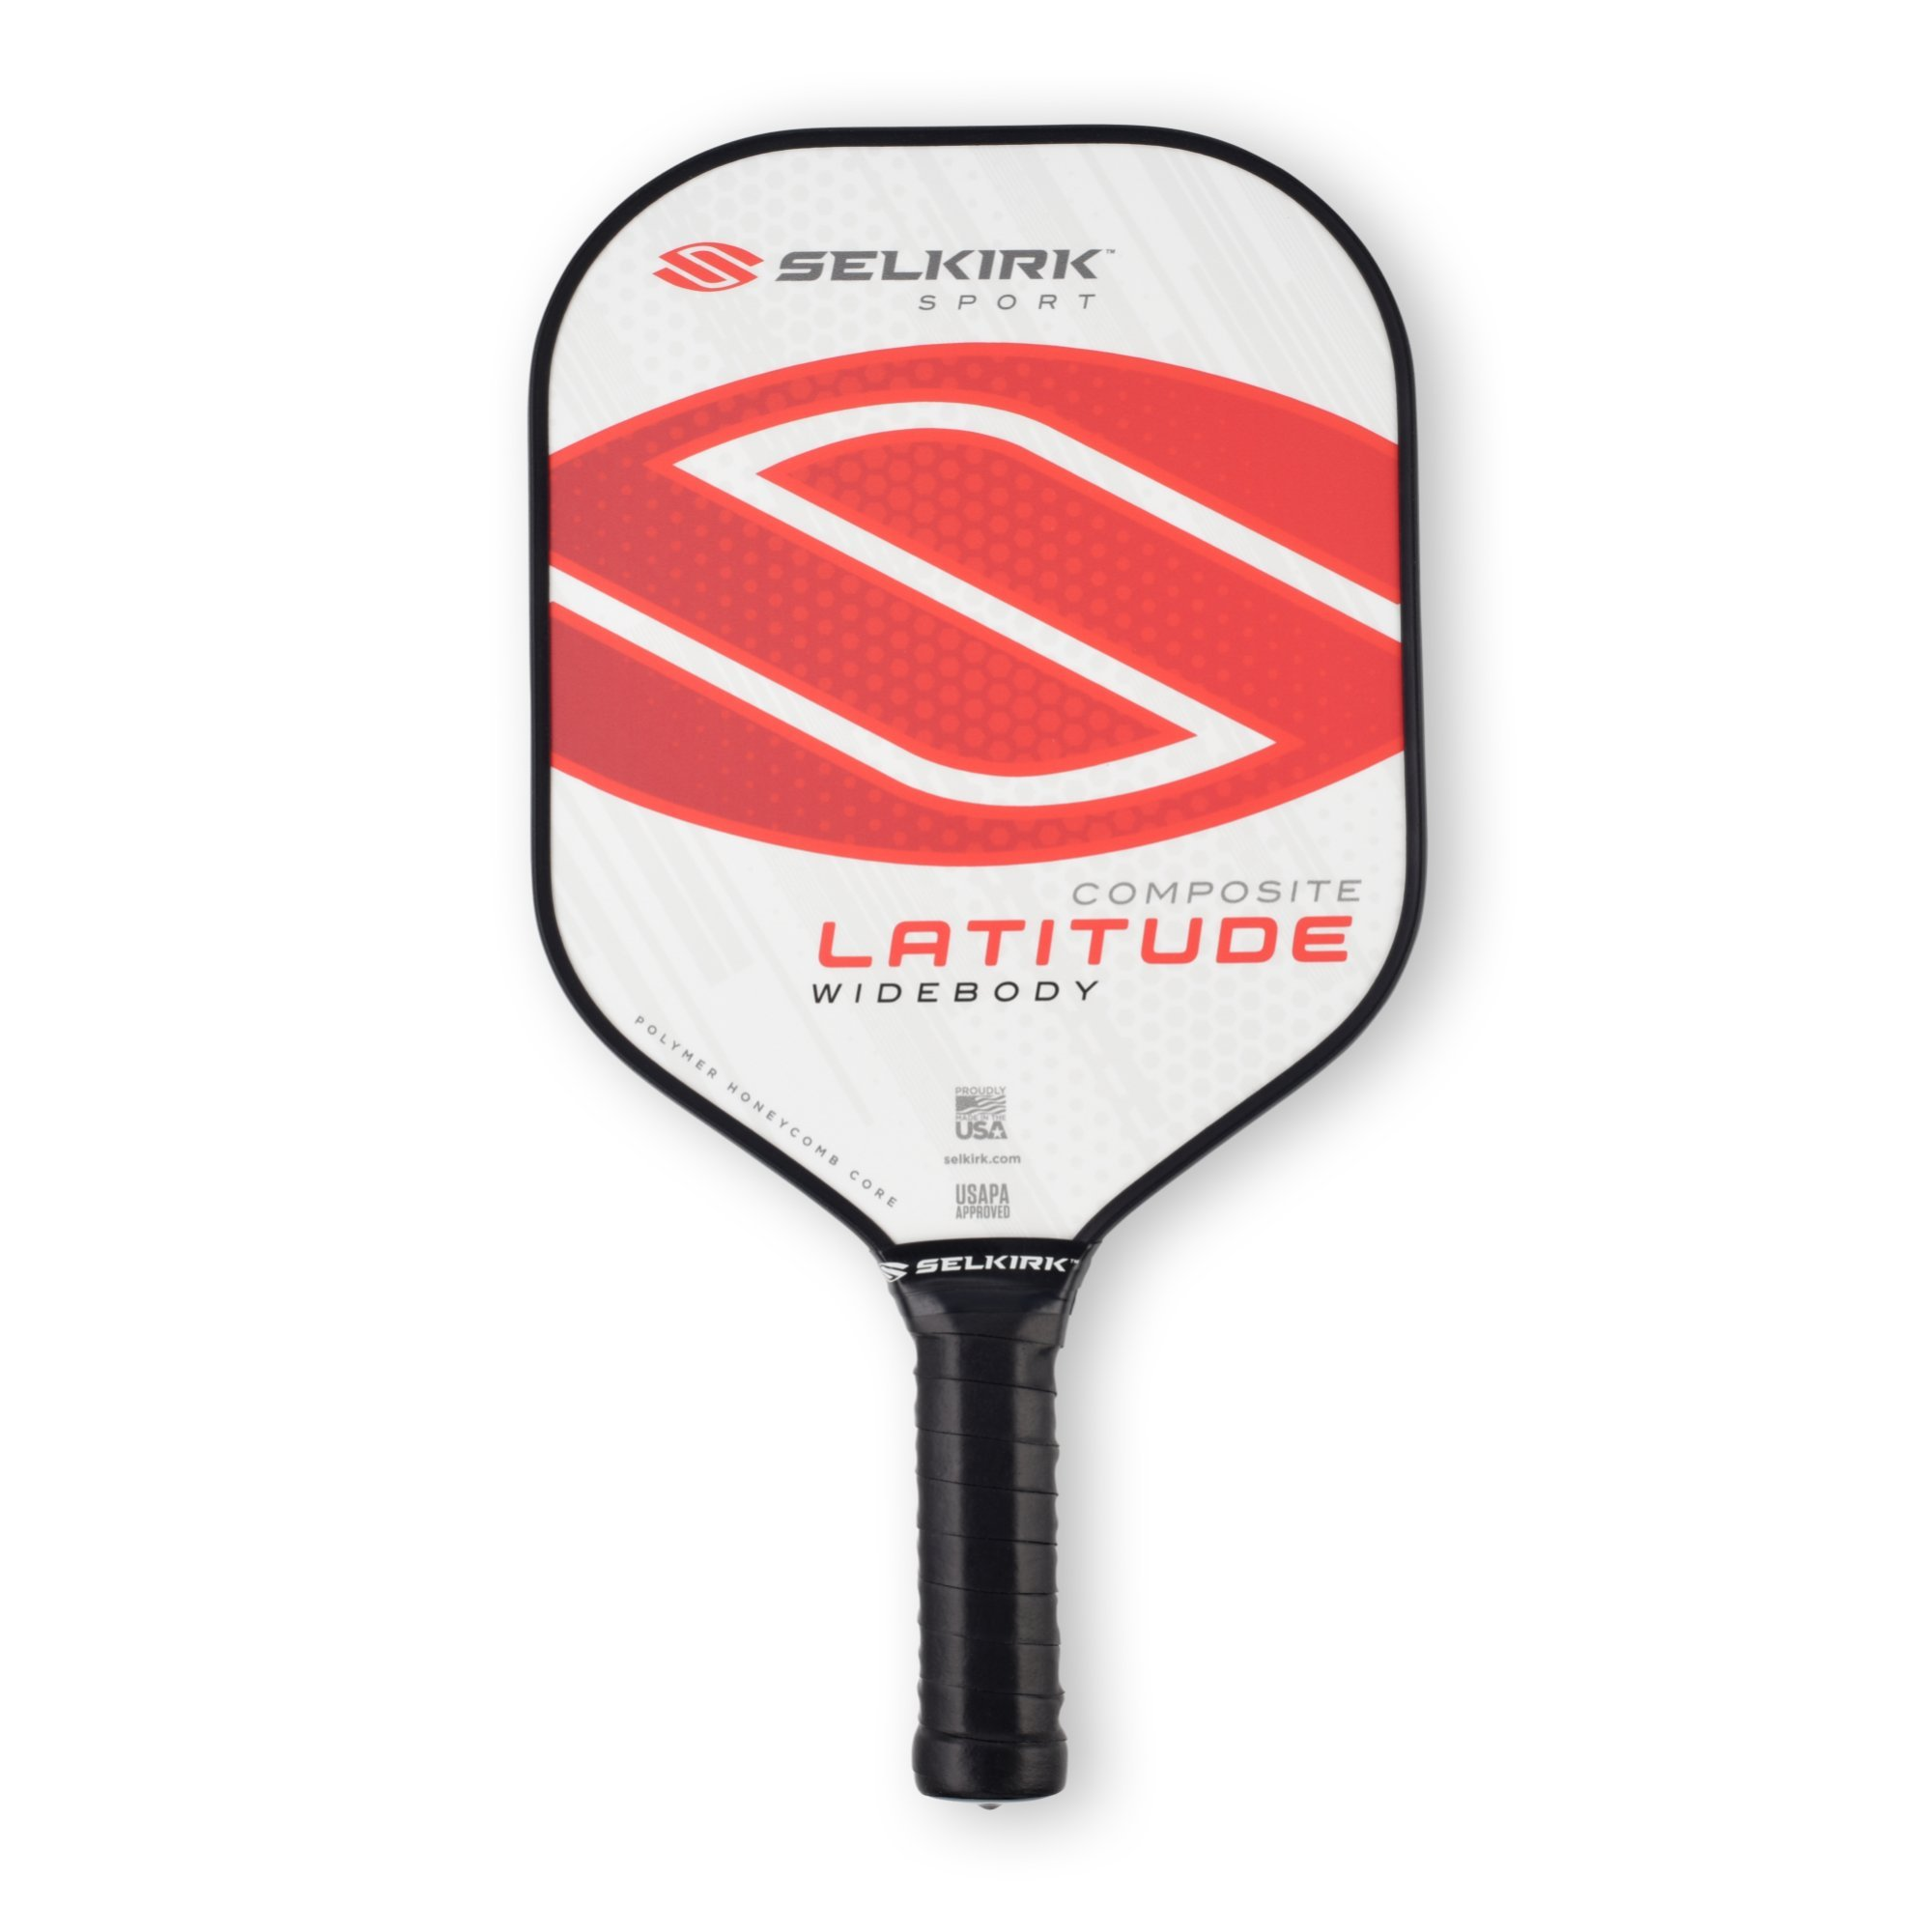 Selkirk Latitude Widebody Composite Pickleball Paddle - USAPA Approved - PowerCore Polymer Core - PolyFlex Composite Surface - EdgeSentry Protection - ThinGrip Handle (Red Force) by Selkirk Sport